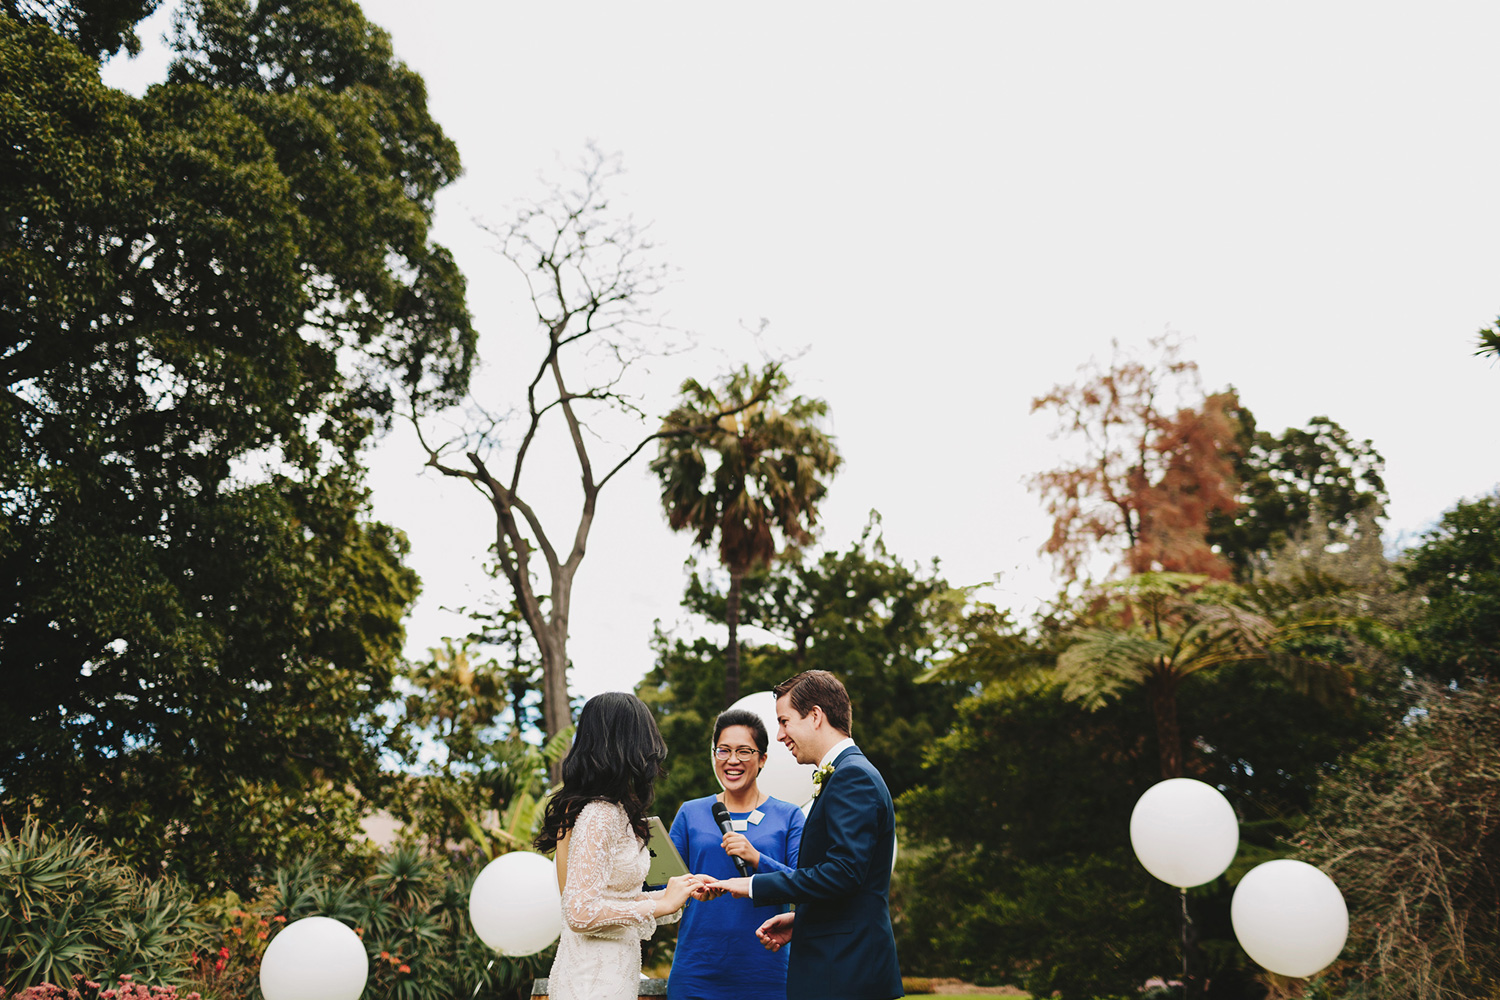 045-Sayher-&-Amelia-Melbourne-Wedding.jpg